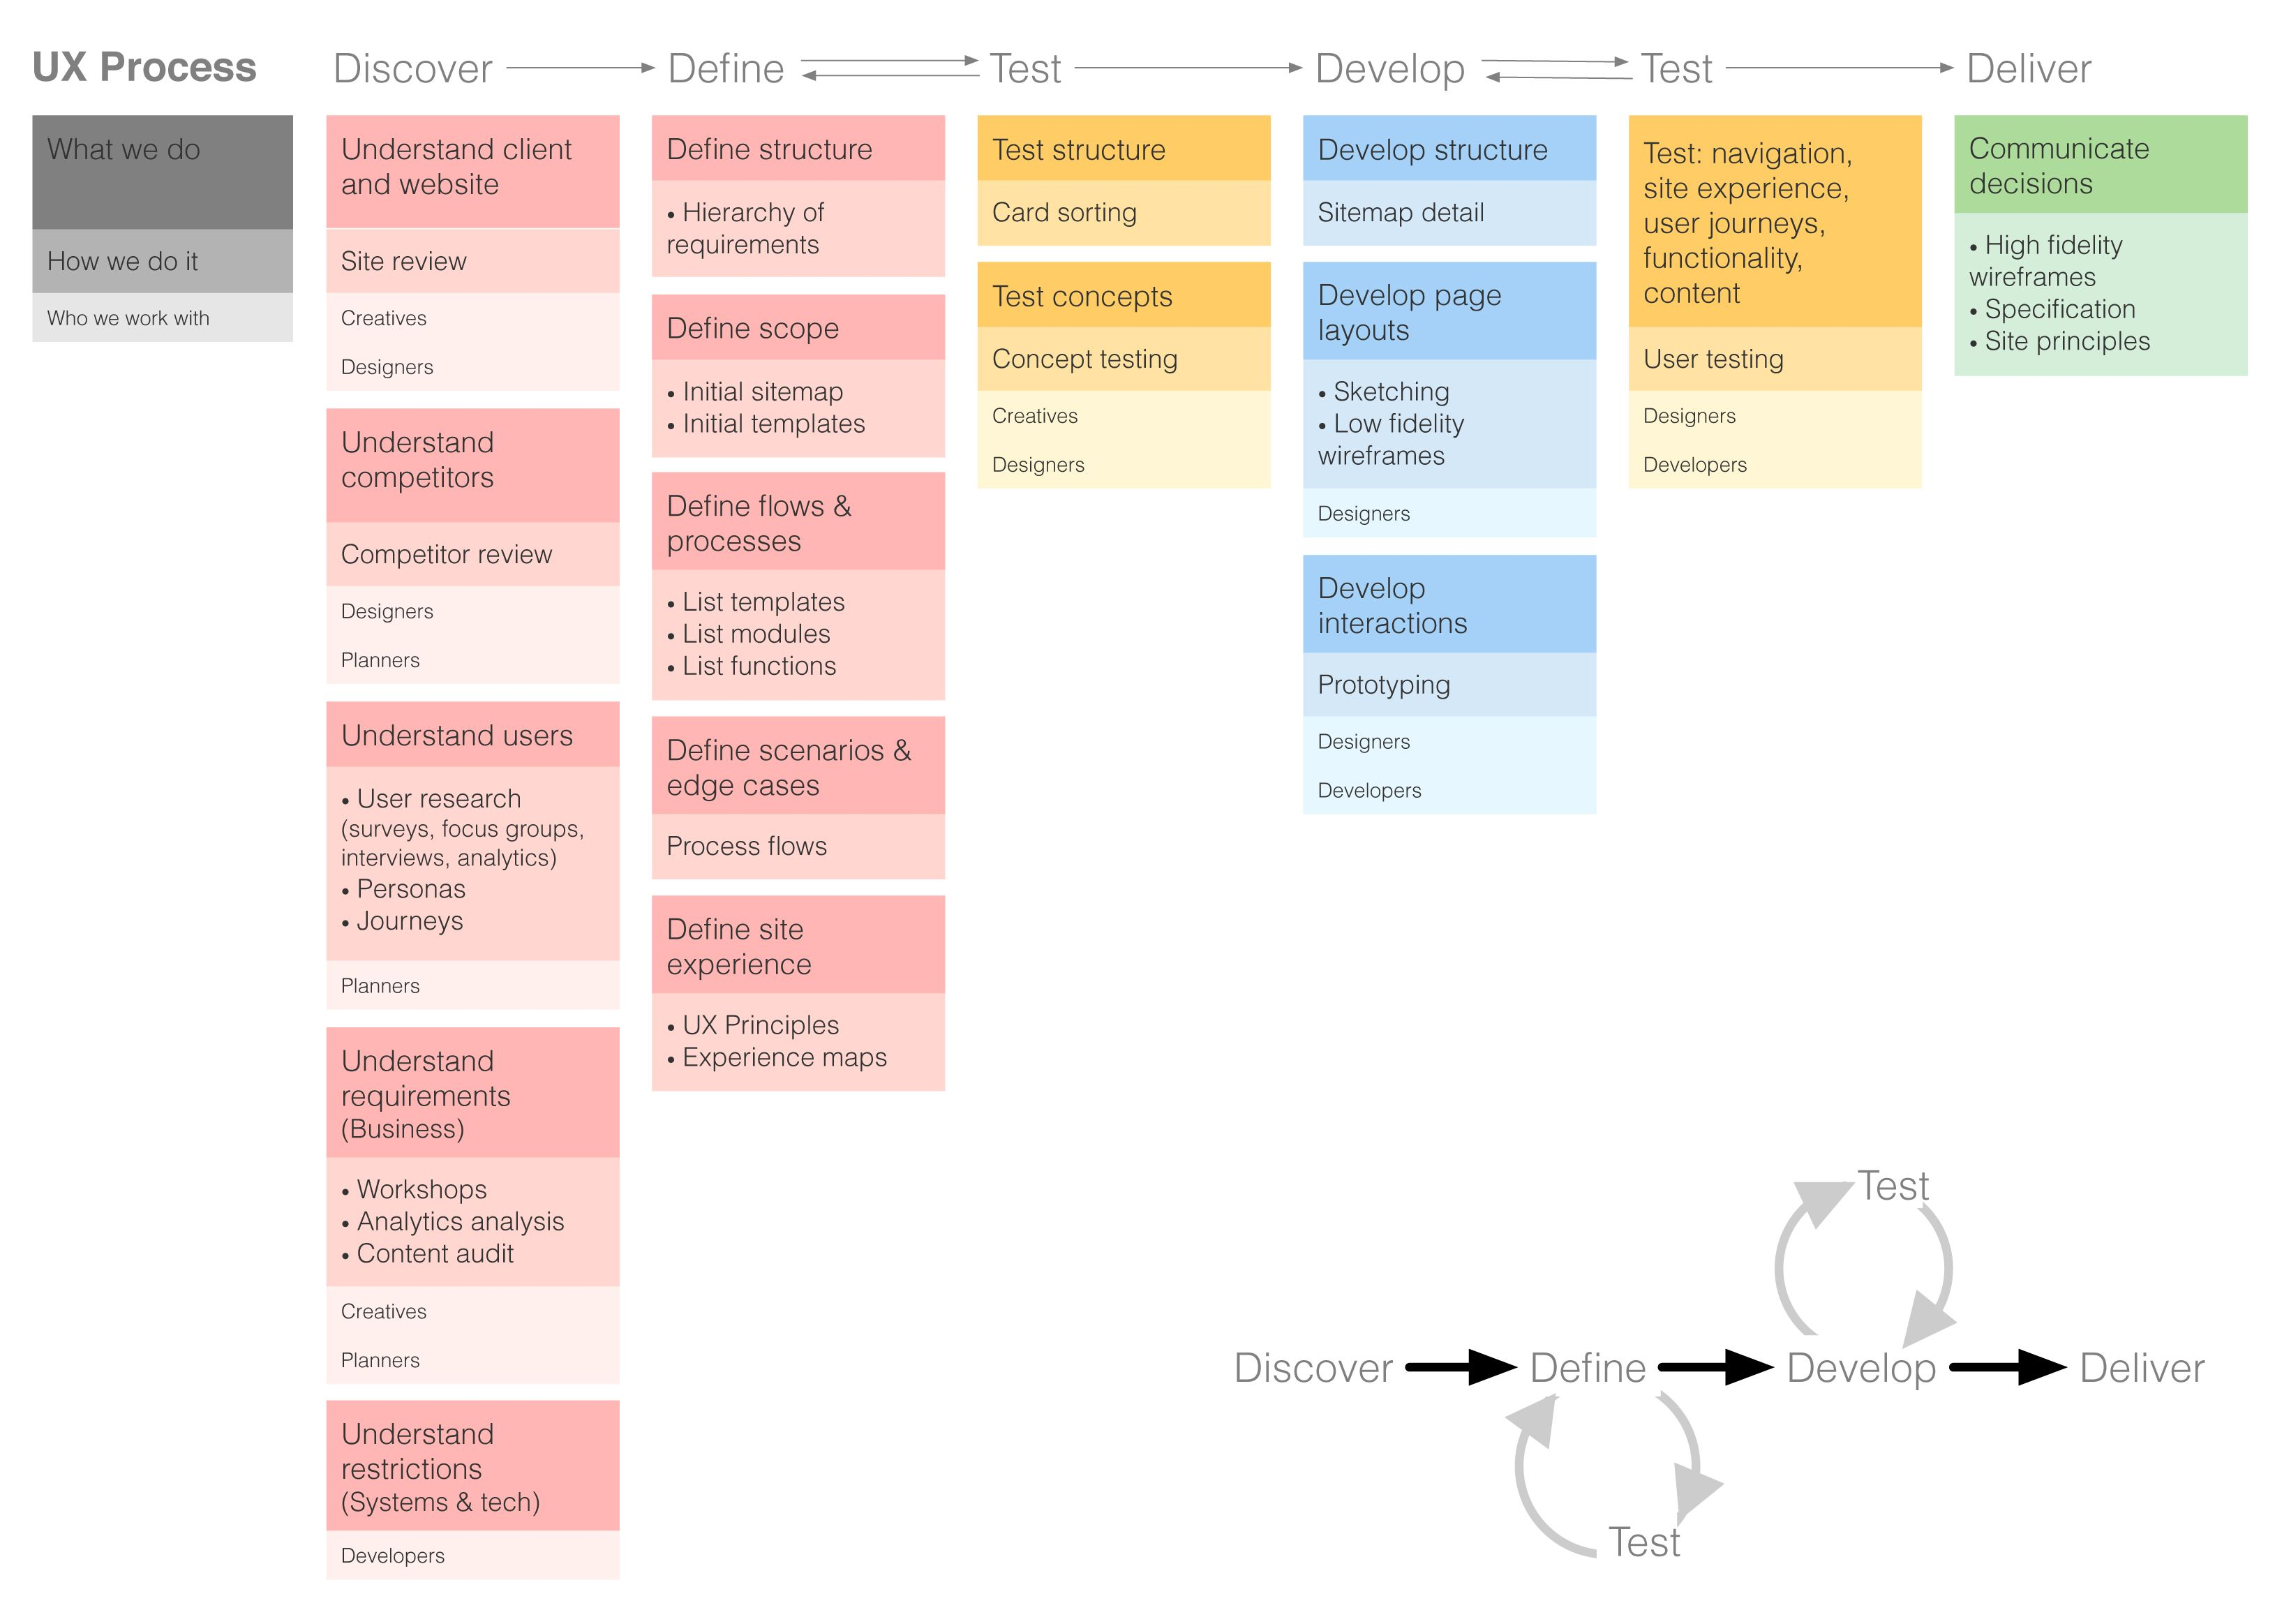 ux process :: diagram to explain the ux process and how departments can  work collaboratively